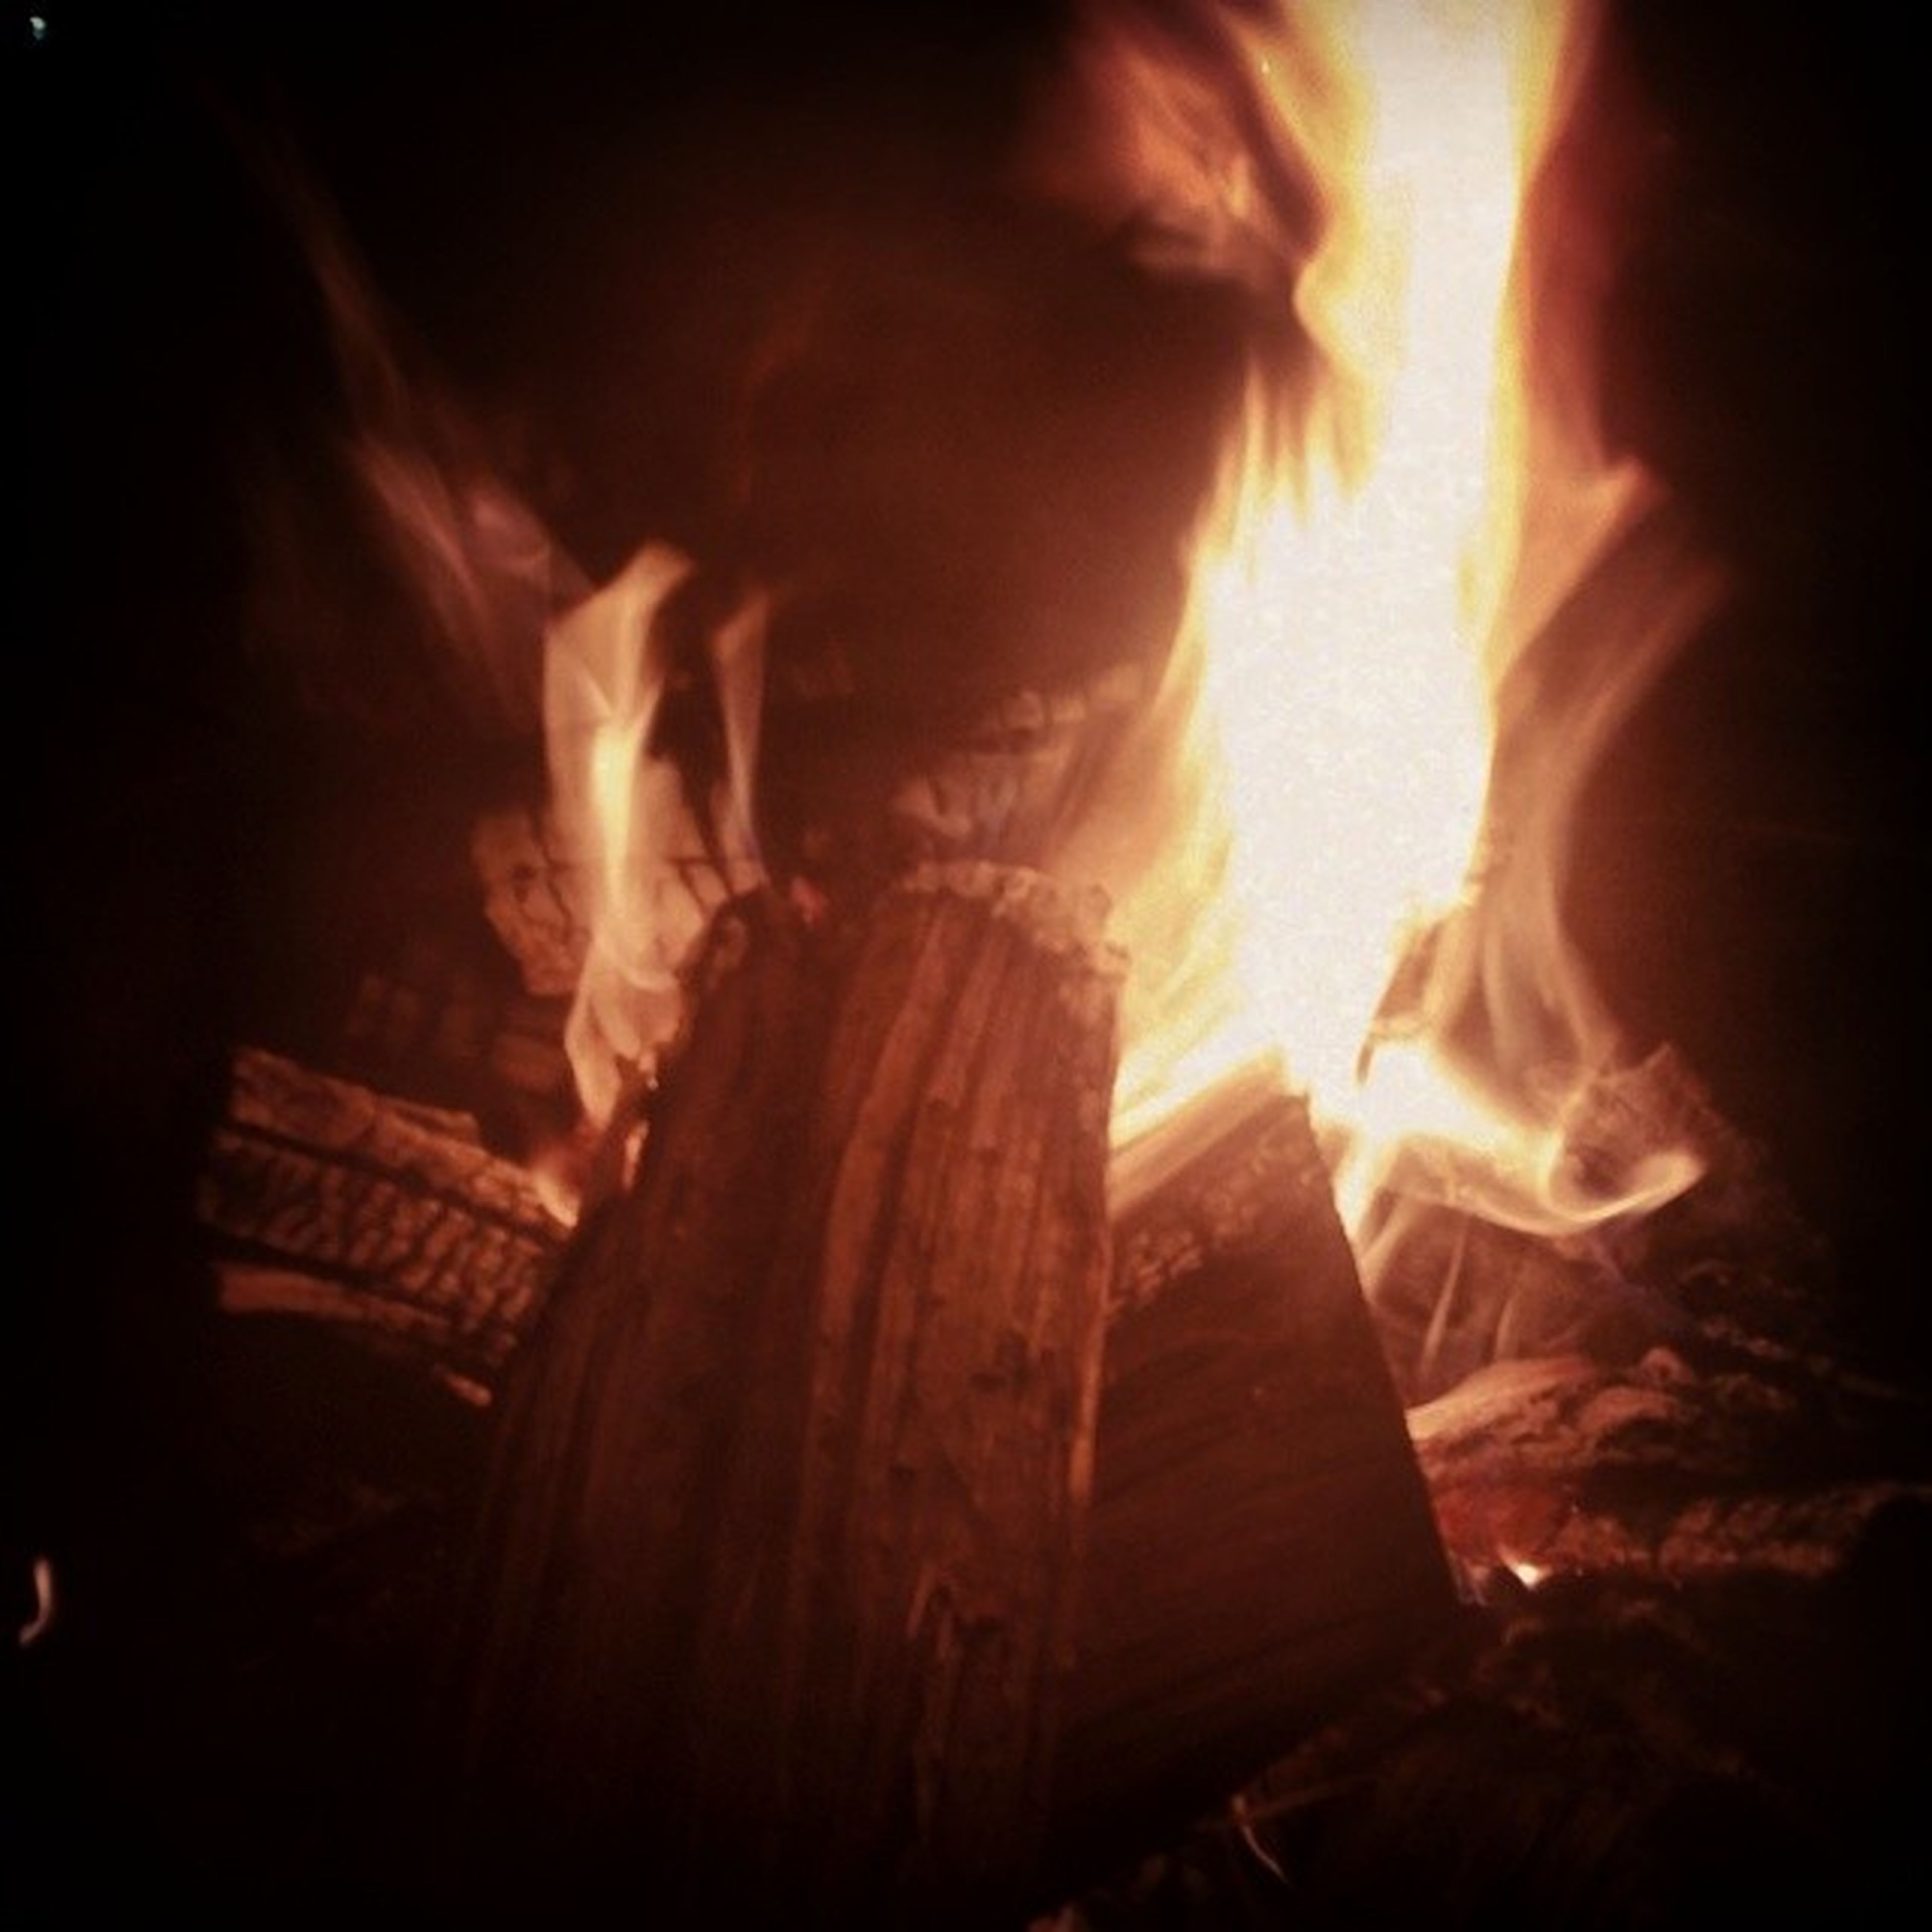 flame, burning, fire - natural phenomenon, heat - temperature, night, glowing, bonfire, fire, illuminated, firewood, light - natural phenomenon, dark, wood - material, smoke - physical structure, heat, outdoors, no people, long exposure, campfire, motion